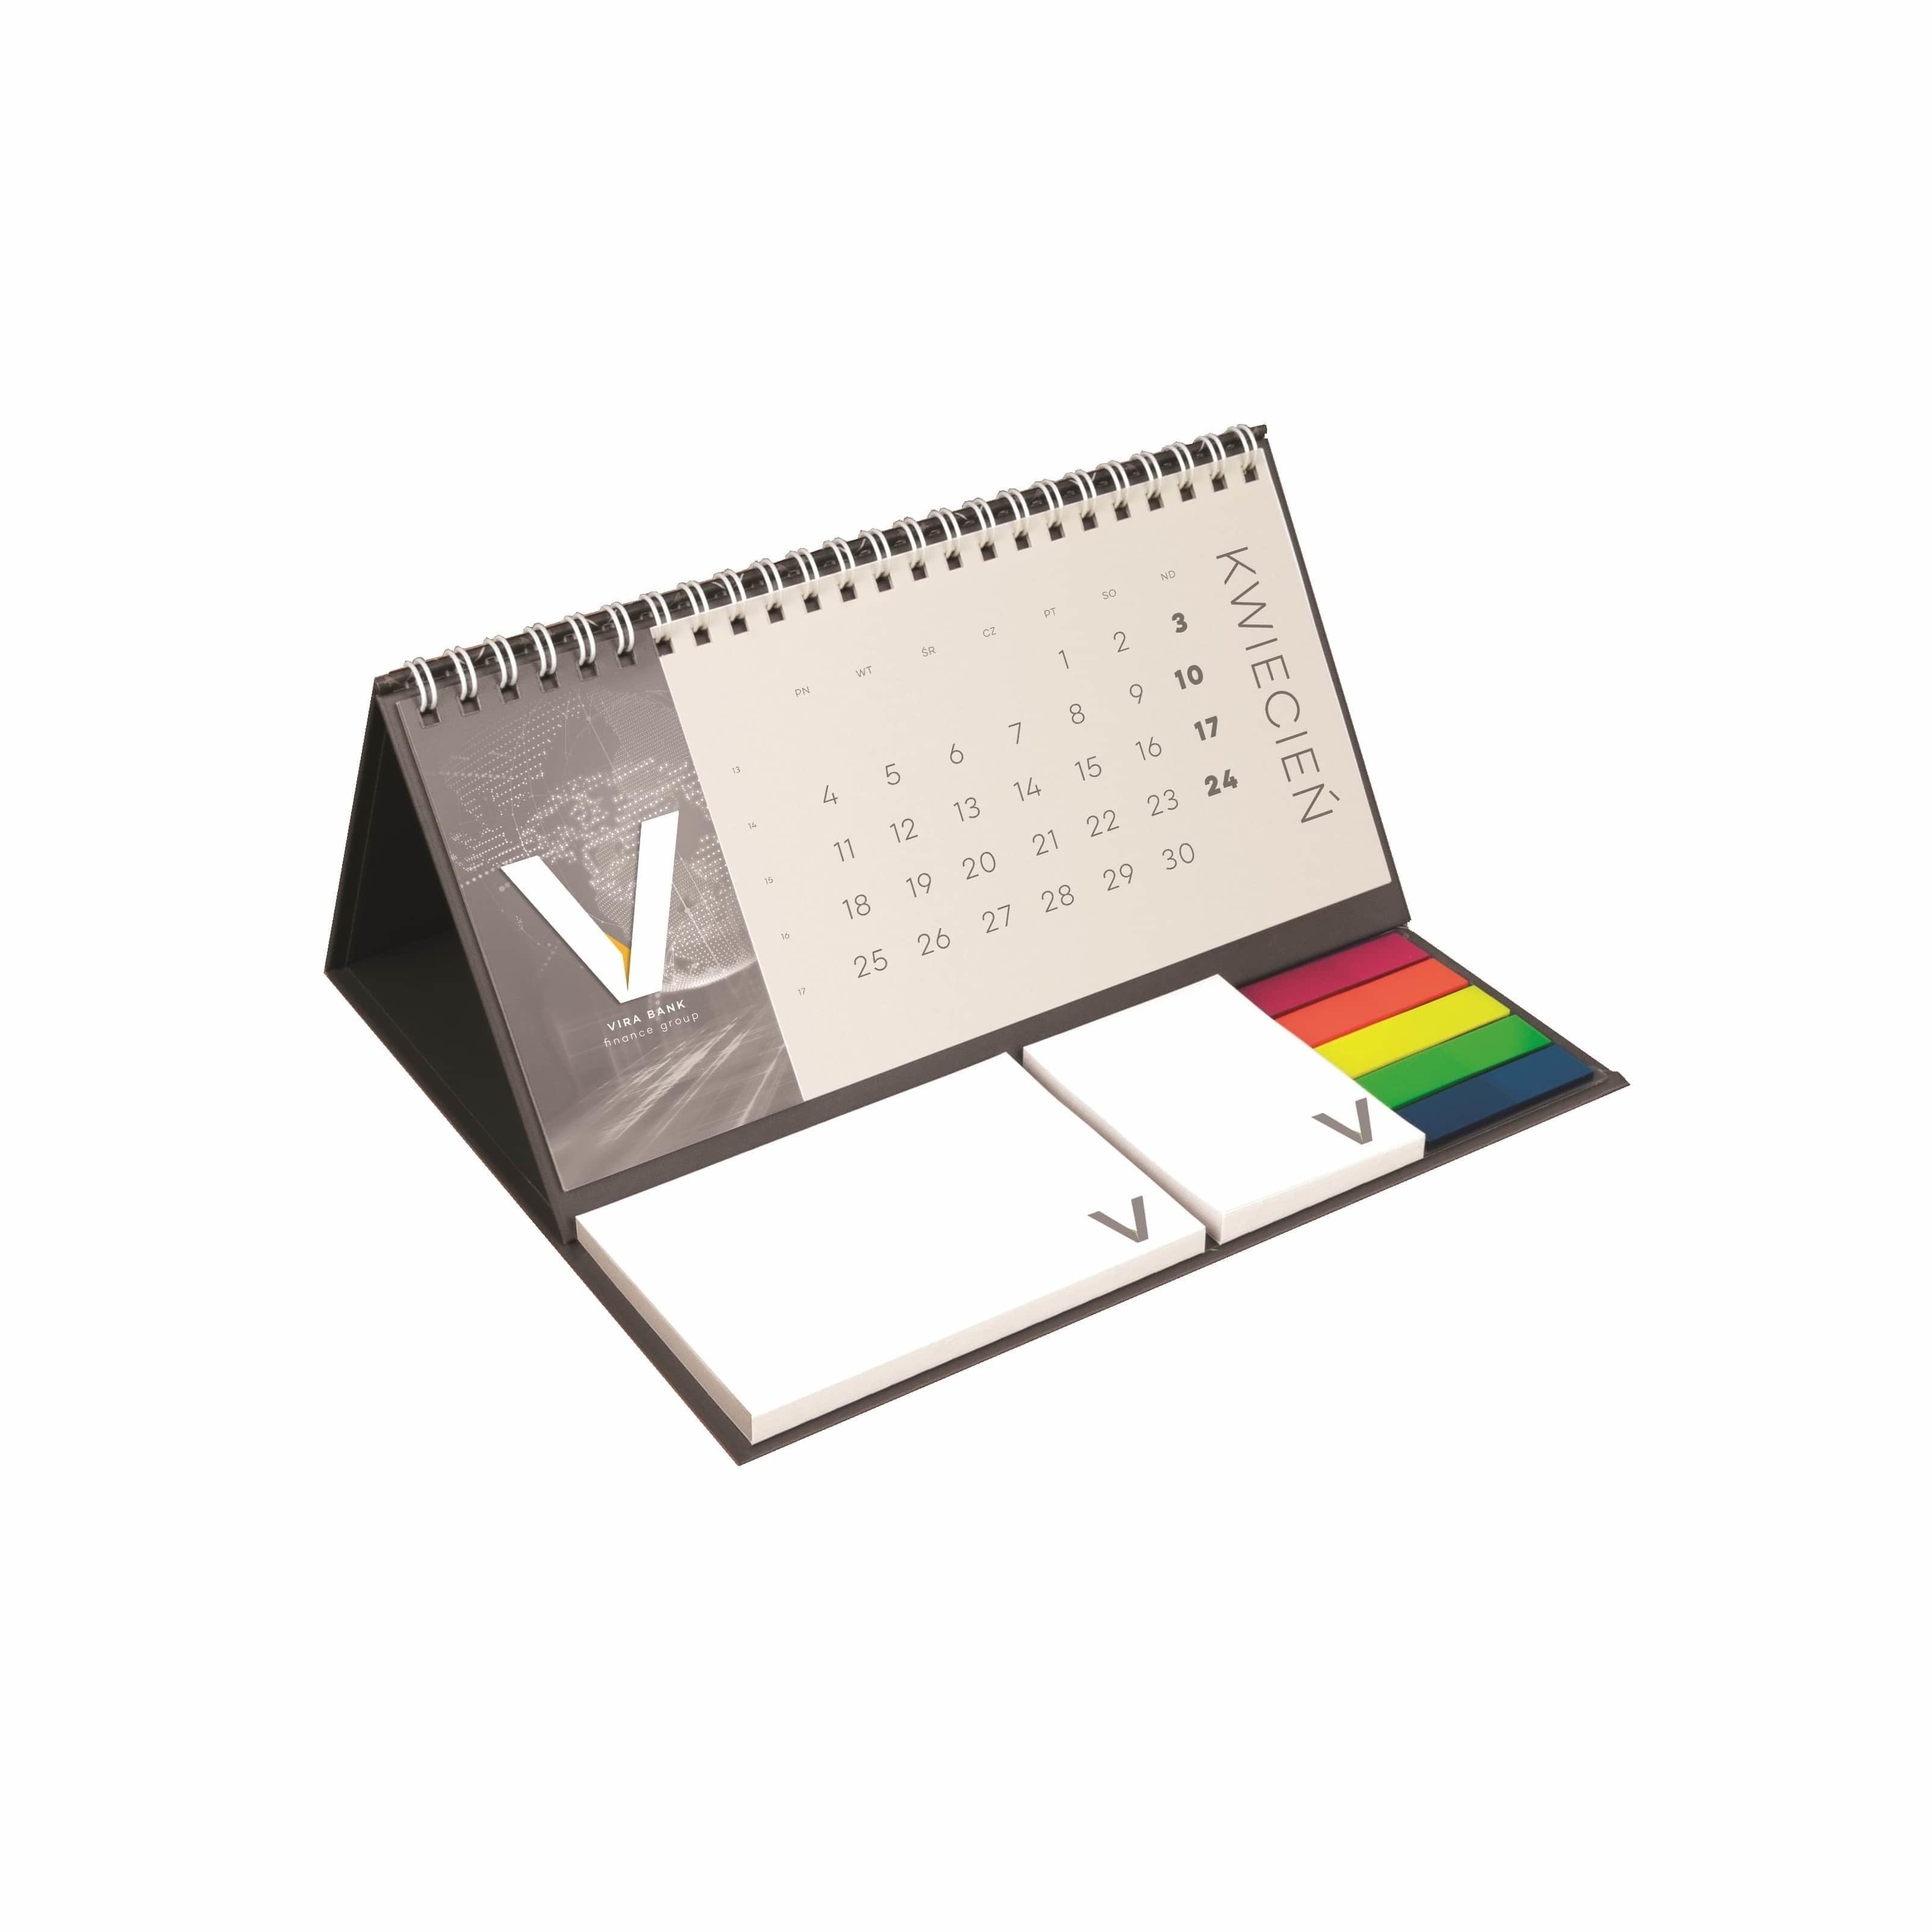 Custom printed wire-o desk calendar 2019 with notepads and index markers, www.ontimeprint.co.uk